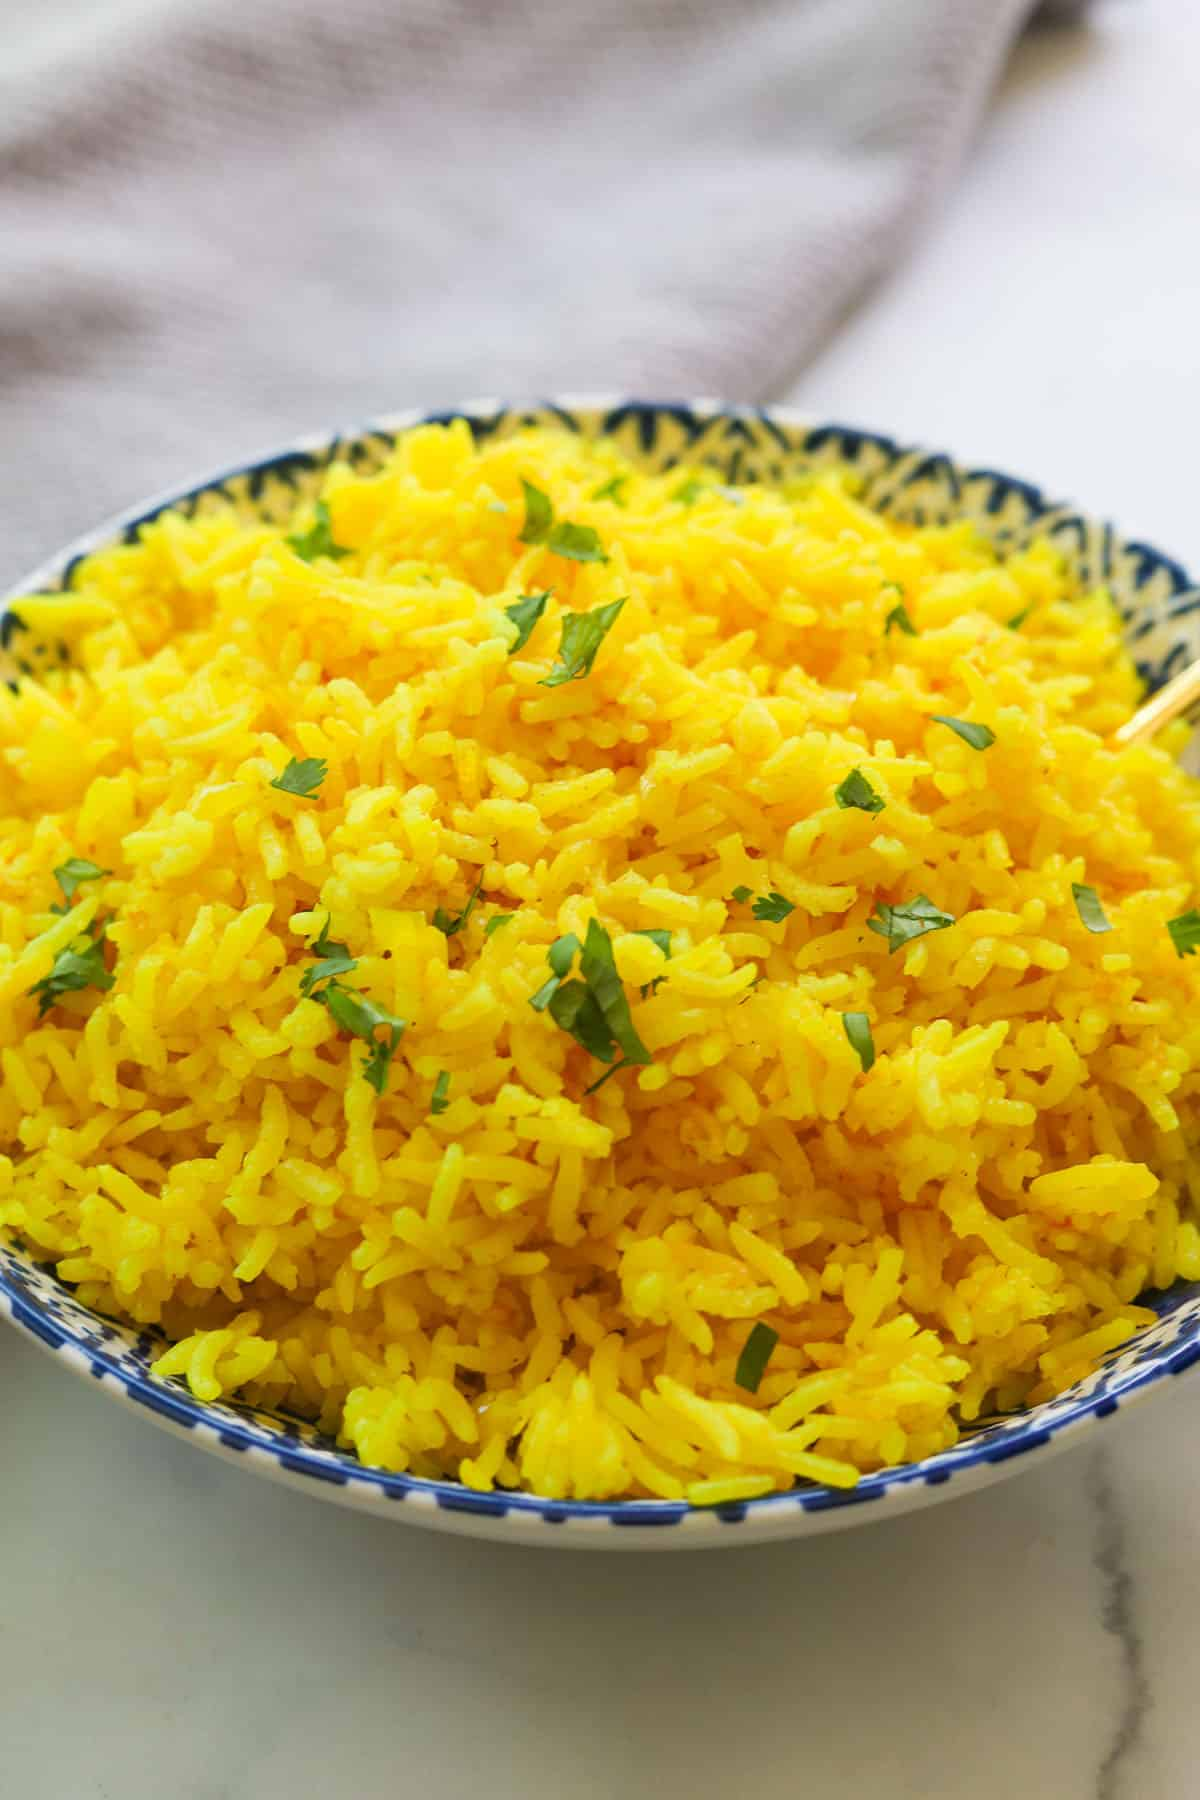 Yellow rice garnished with cilantro in a bowl.